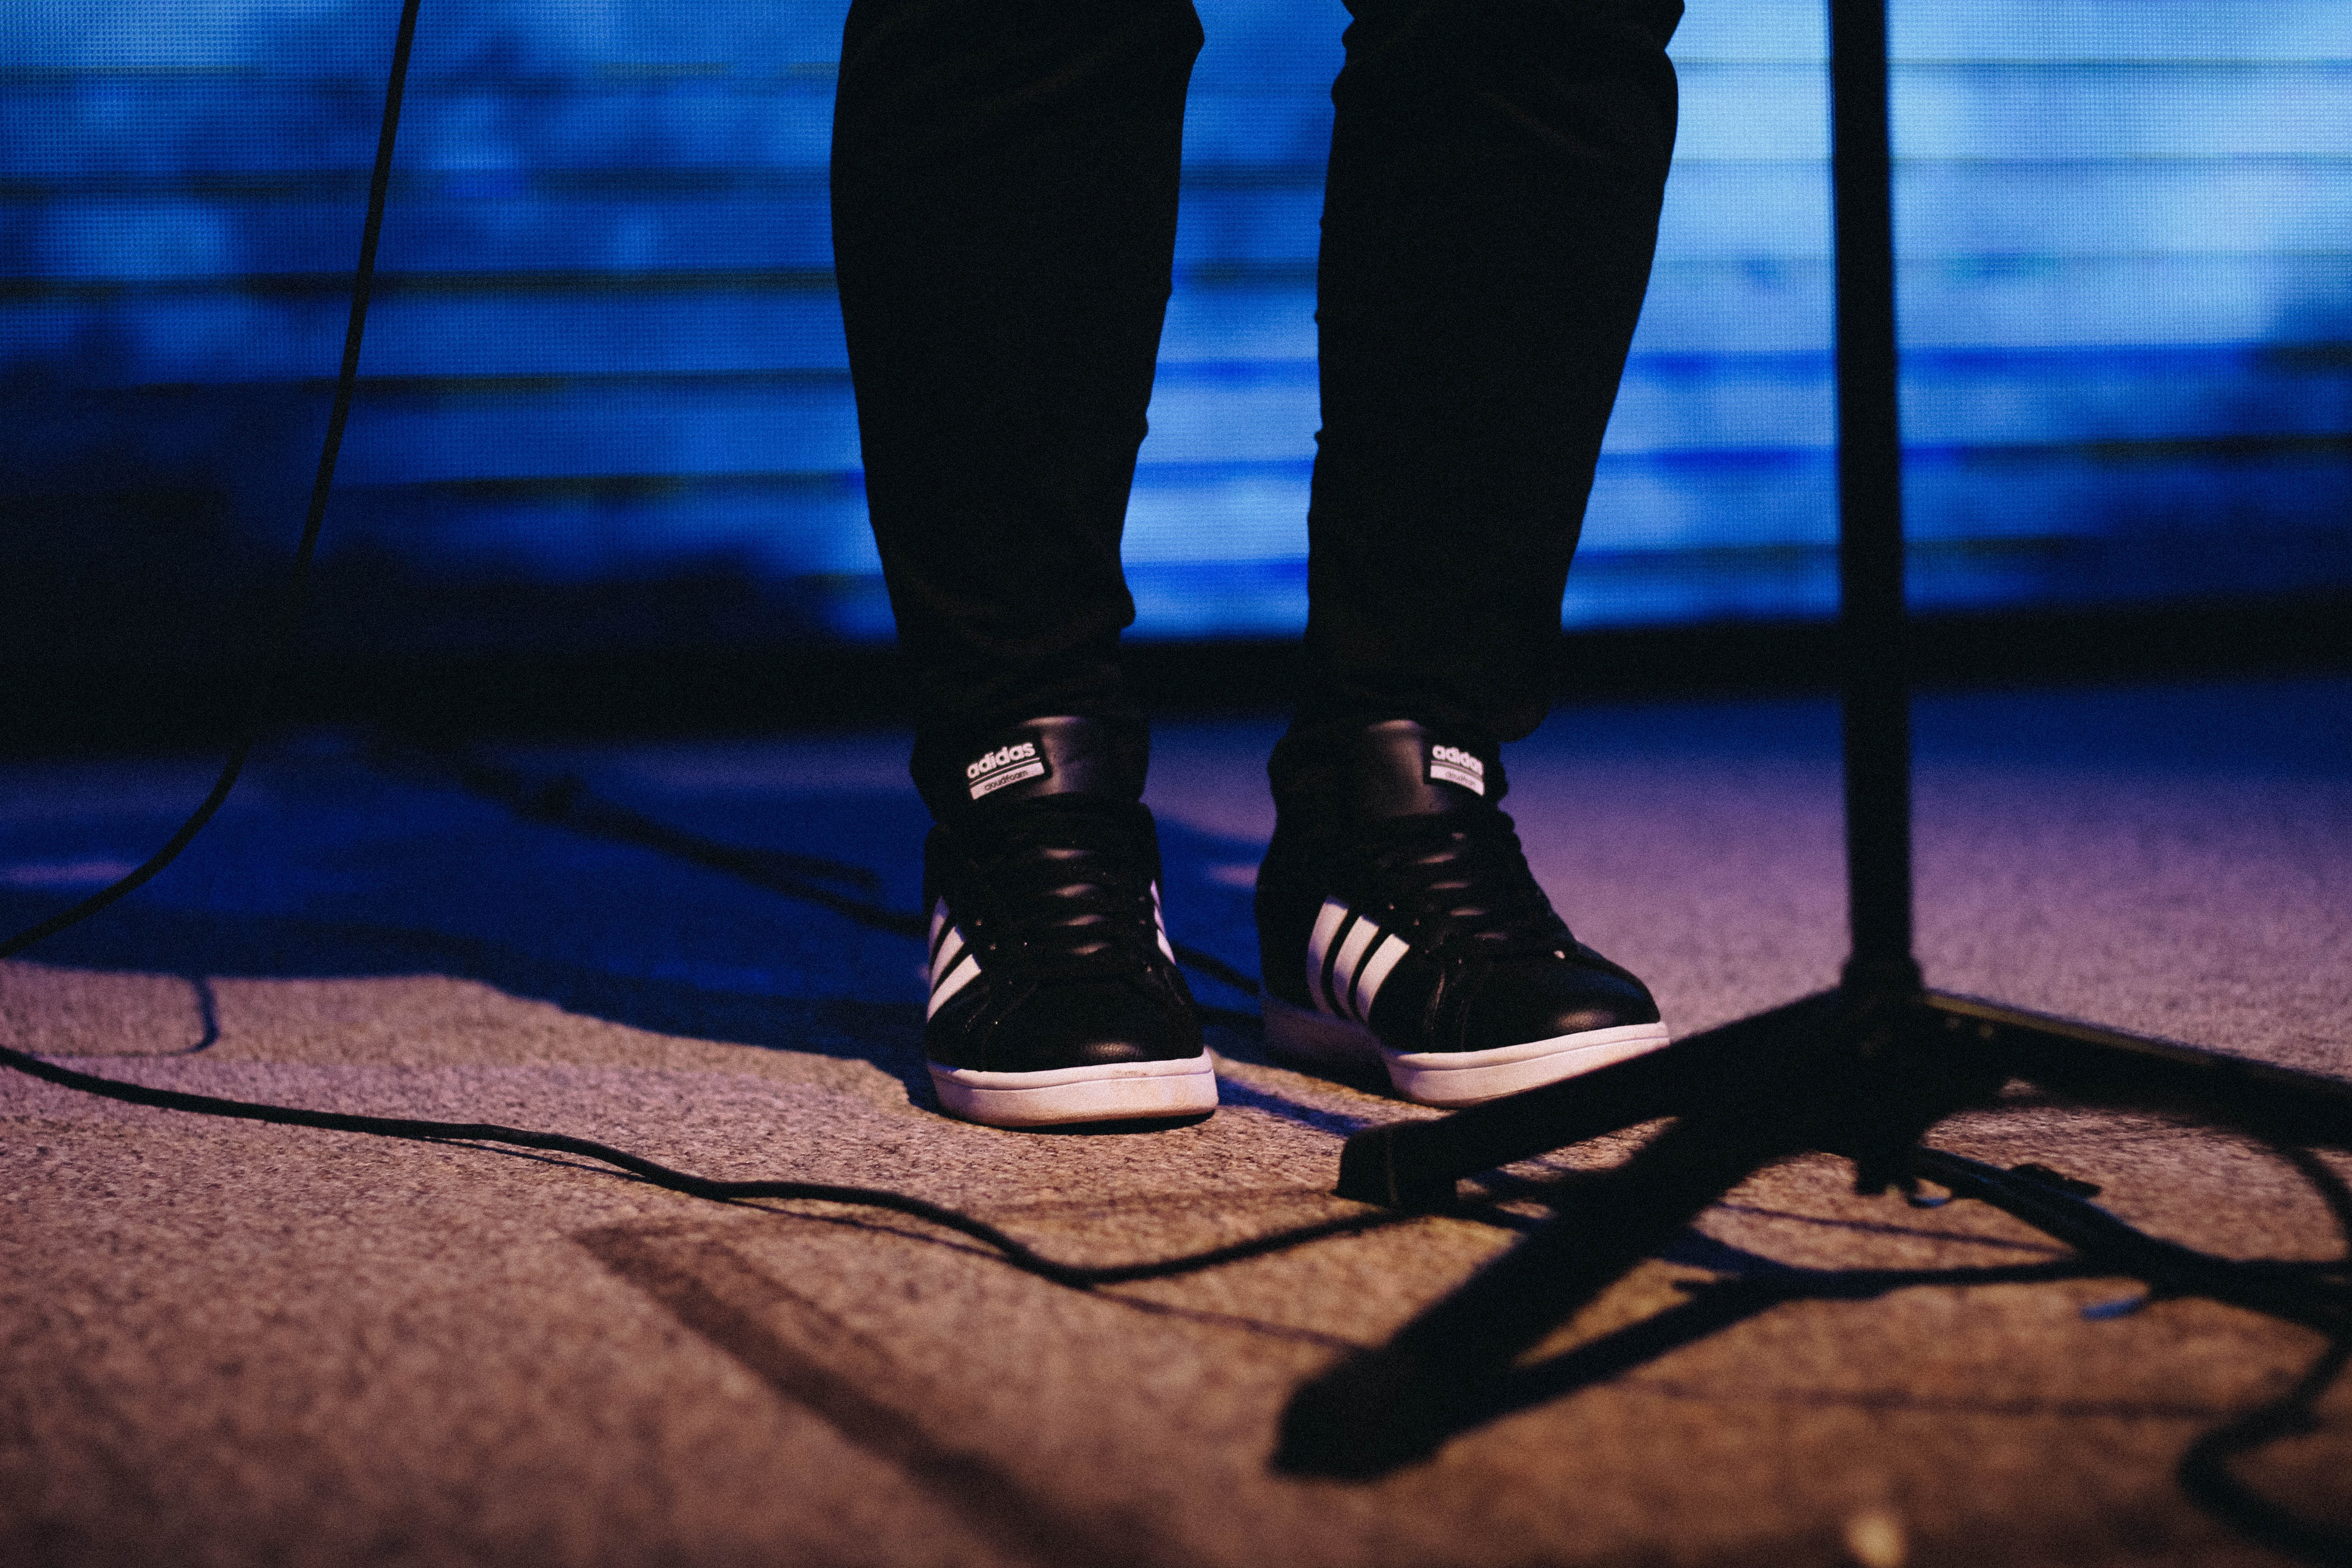 person showing pair of black-and-white adidas shoes